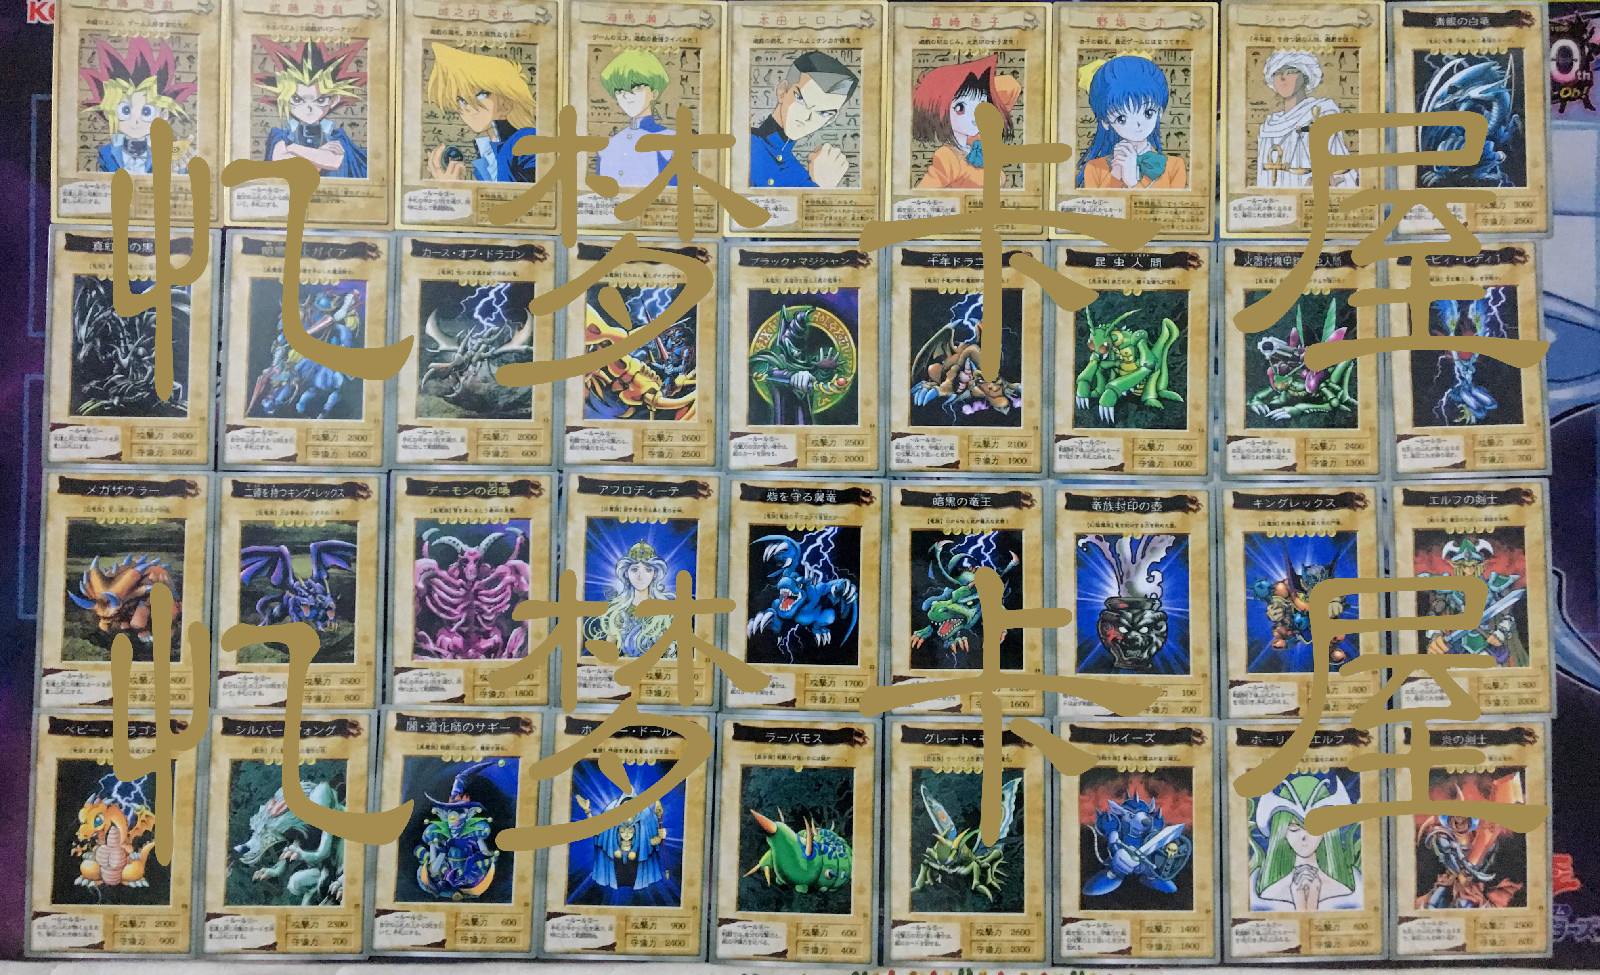 123pcs/set Yu Gi Oh DIY Colorful Toys Hobbies Hobby Collectibles Game Collection Anime Cards